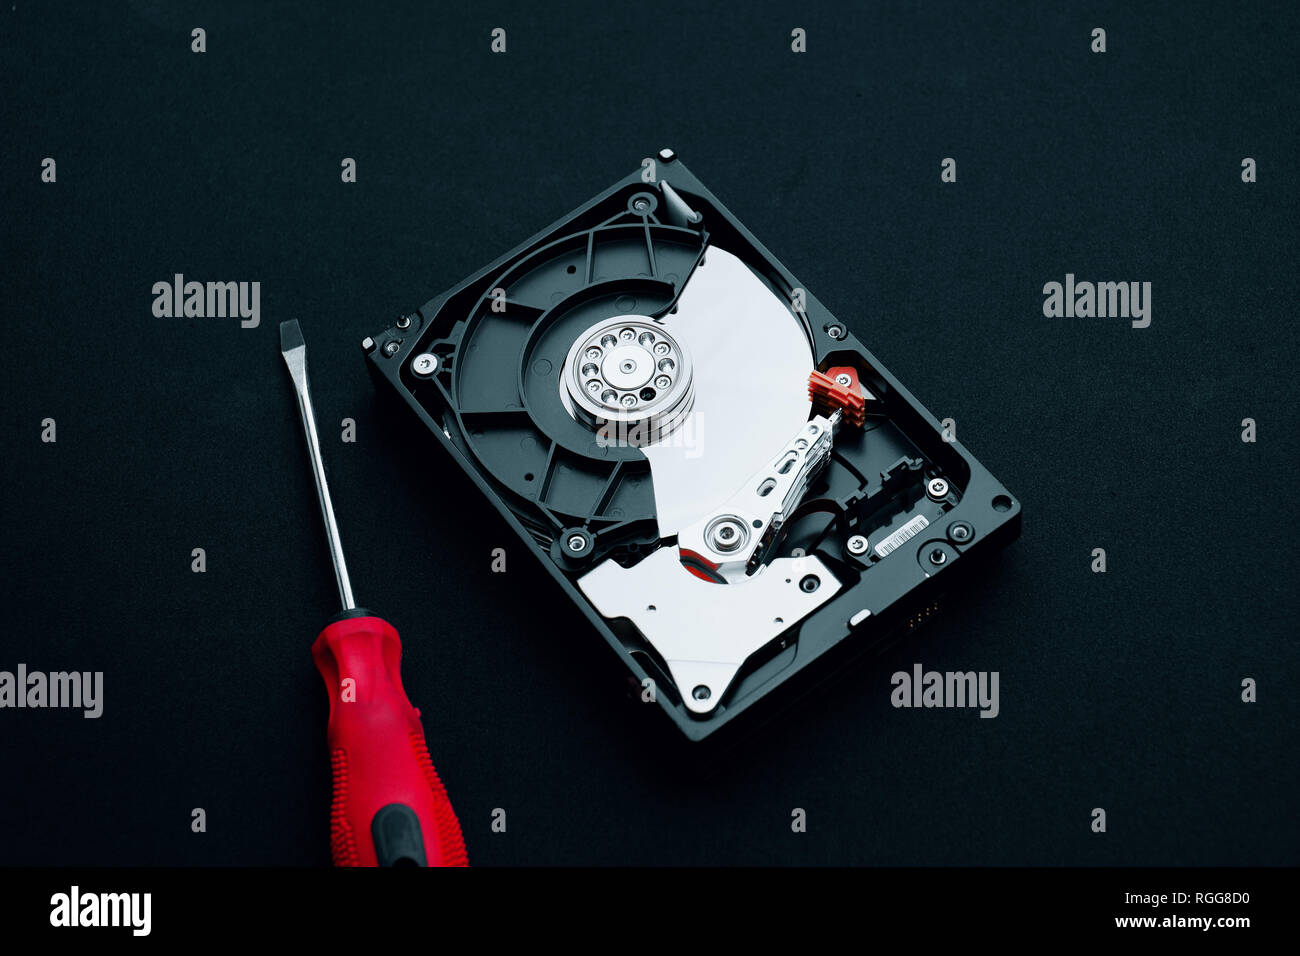 Computer hardware repair and inspection concepts, Disassembled hard disk drive with a screwdriver. - Stock Image